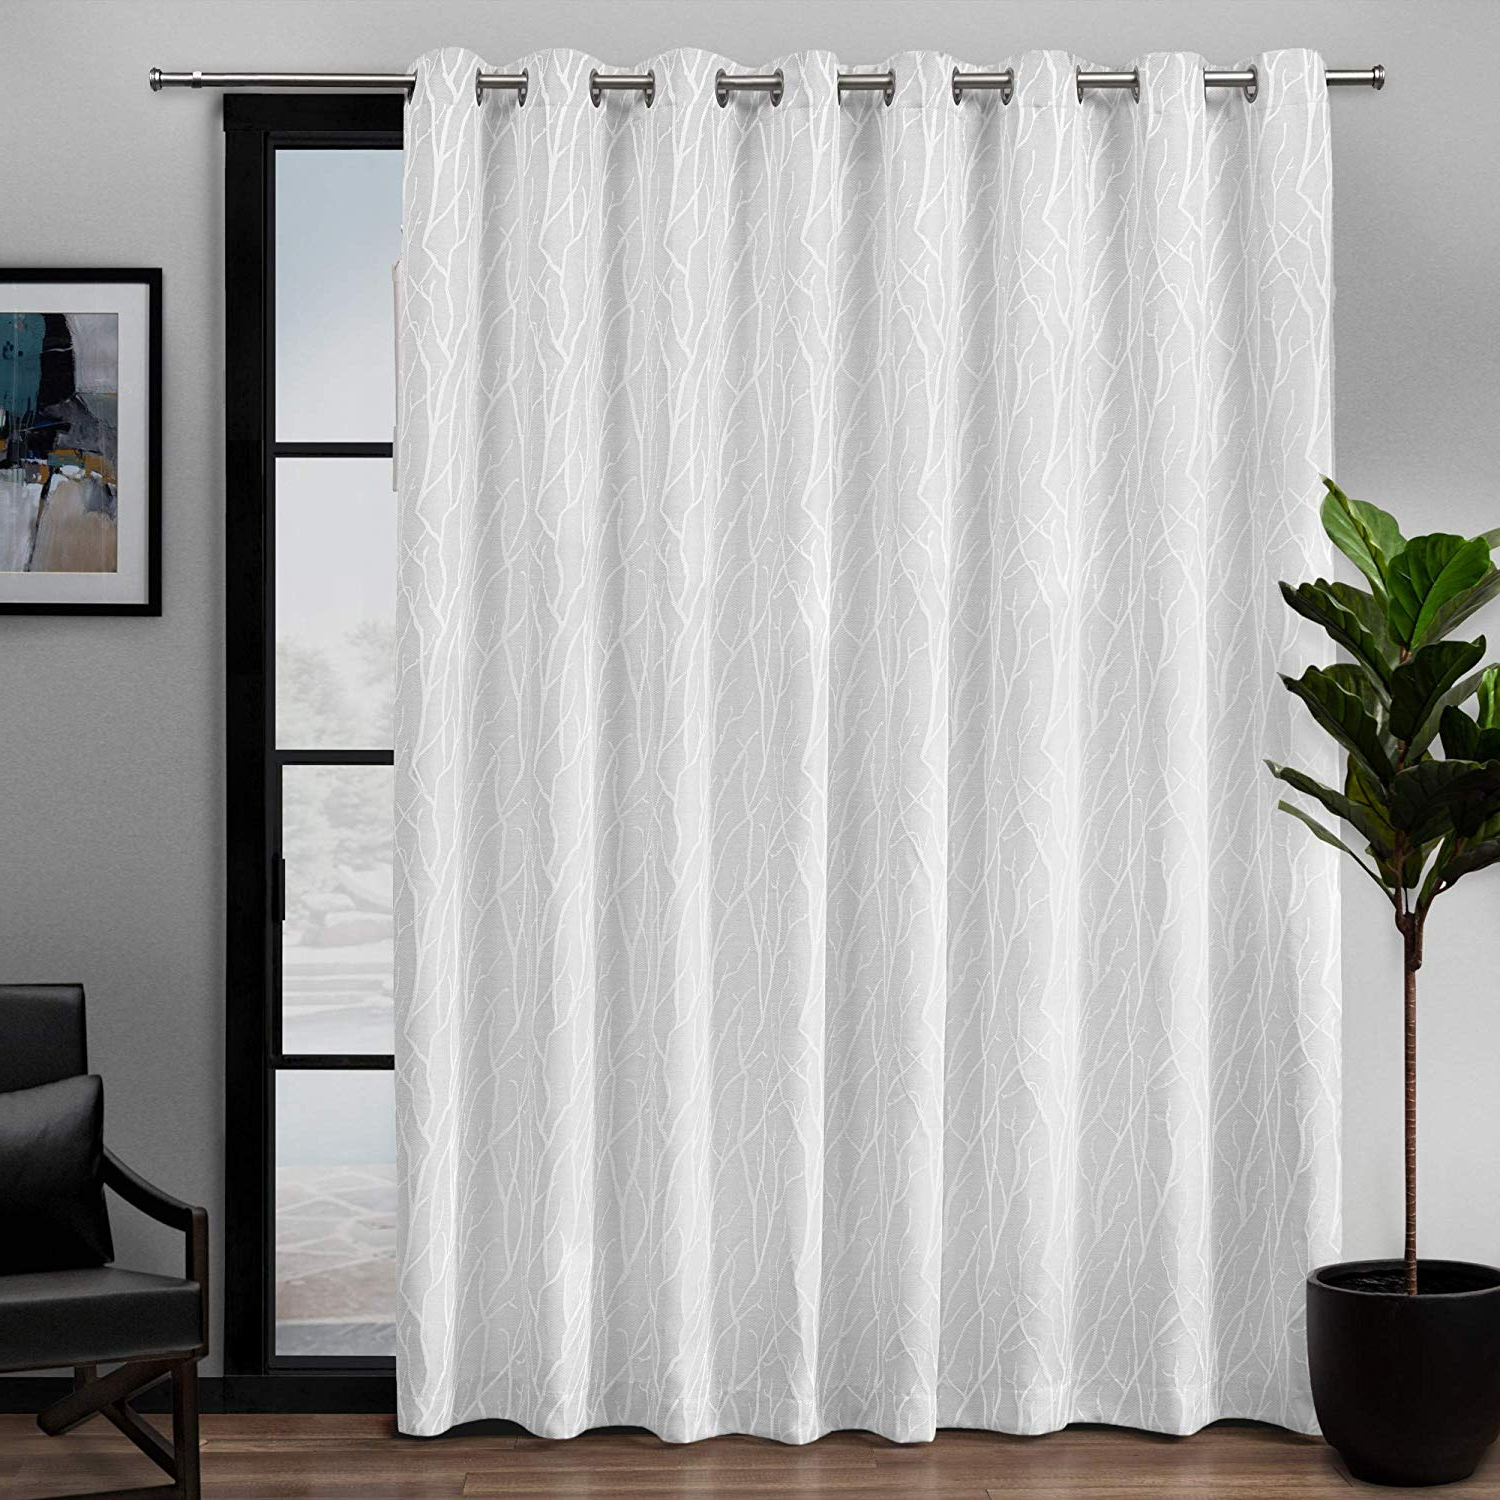 Amazon: Exclusive Home Forest Hill Patio Woven Blackout Regarding Preferred Forest Hill Woven Blackout Grommet Top Curtain Panel Pairs (View 18 of 20)